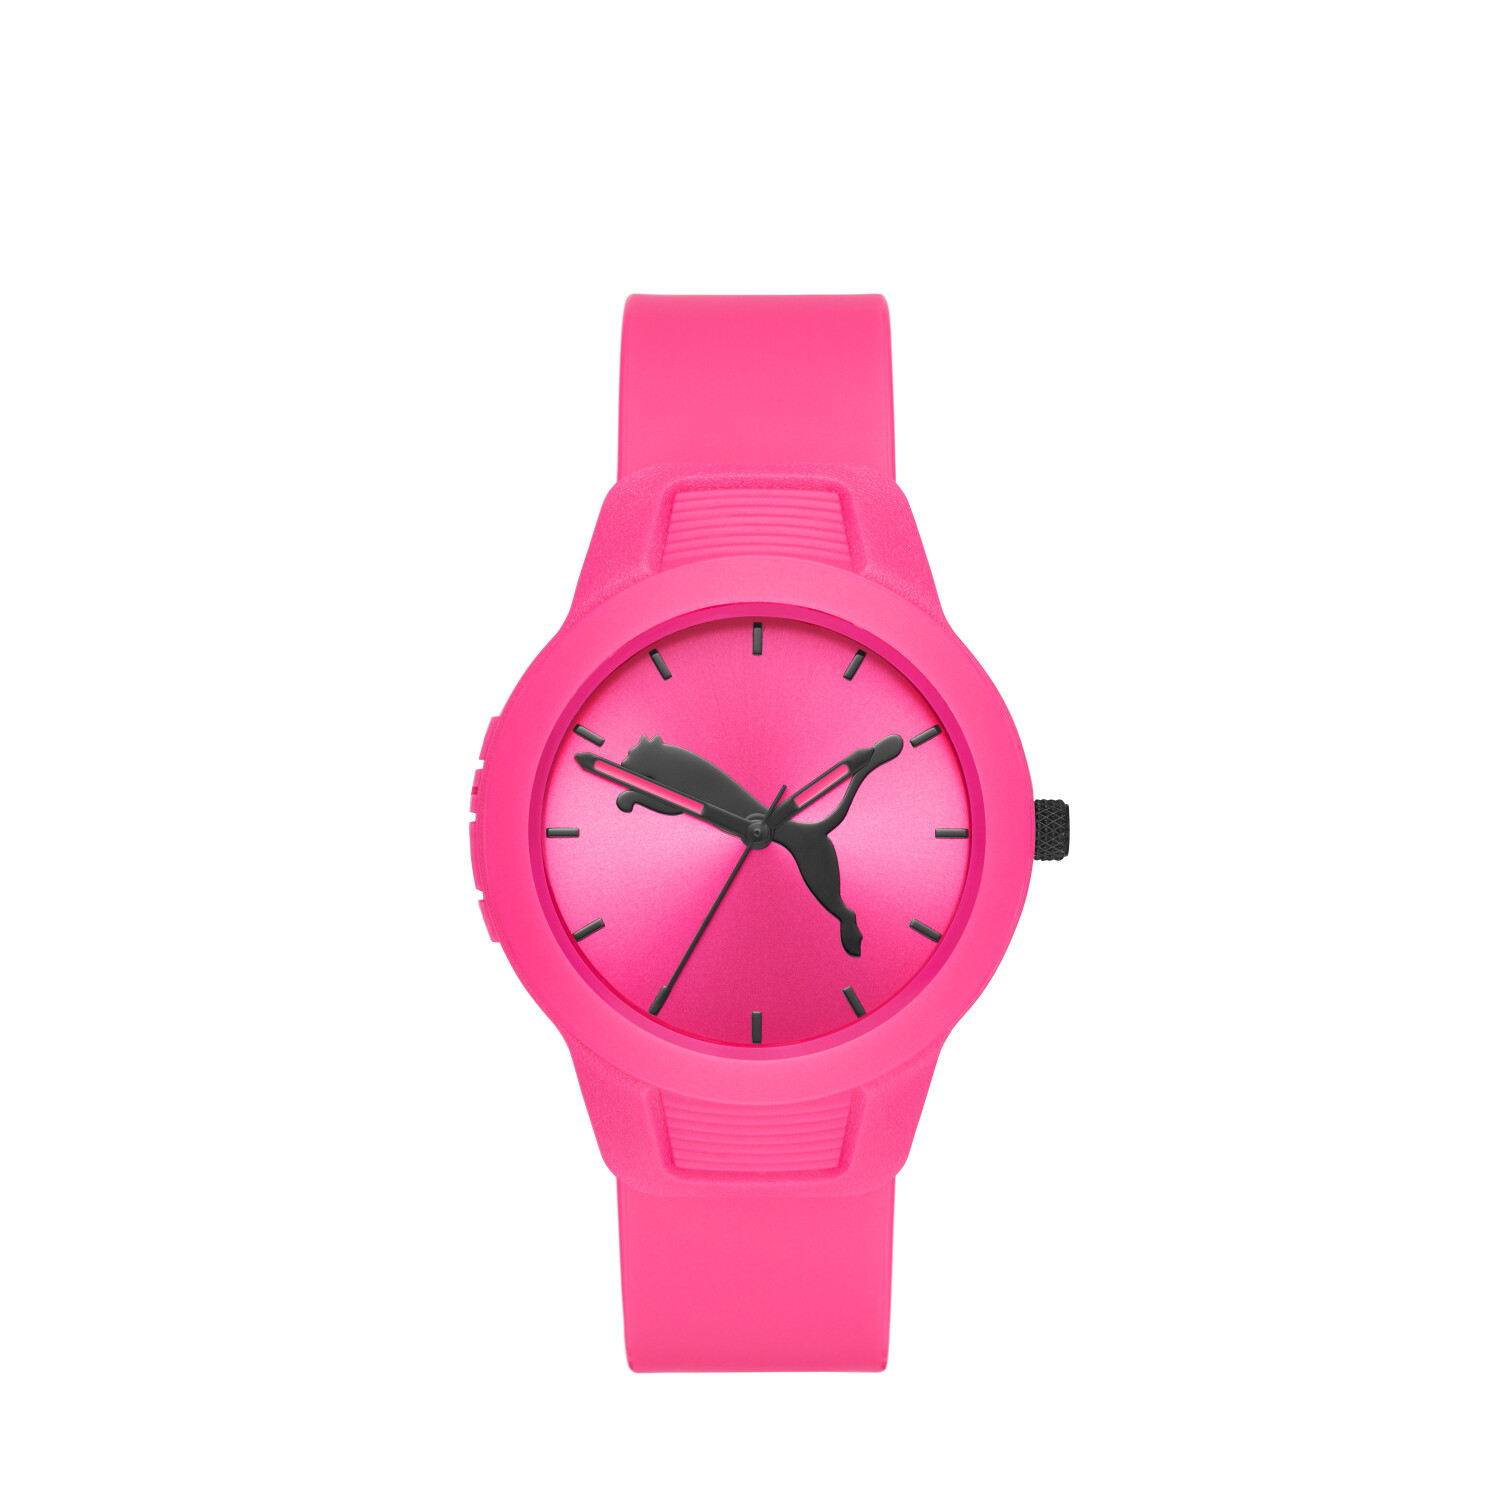 Puma Women's Reset P1015 Pink Polyurethane Quartz Fashion Watch